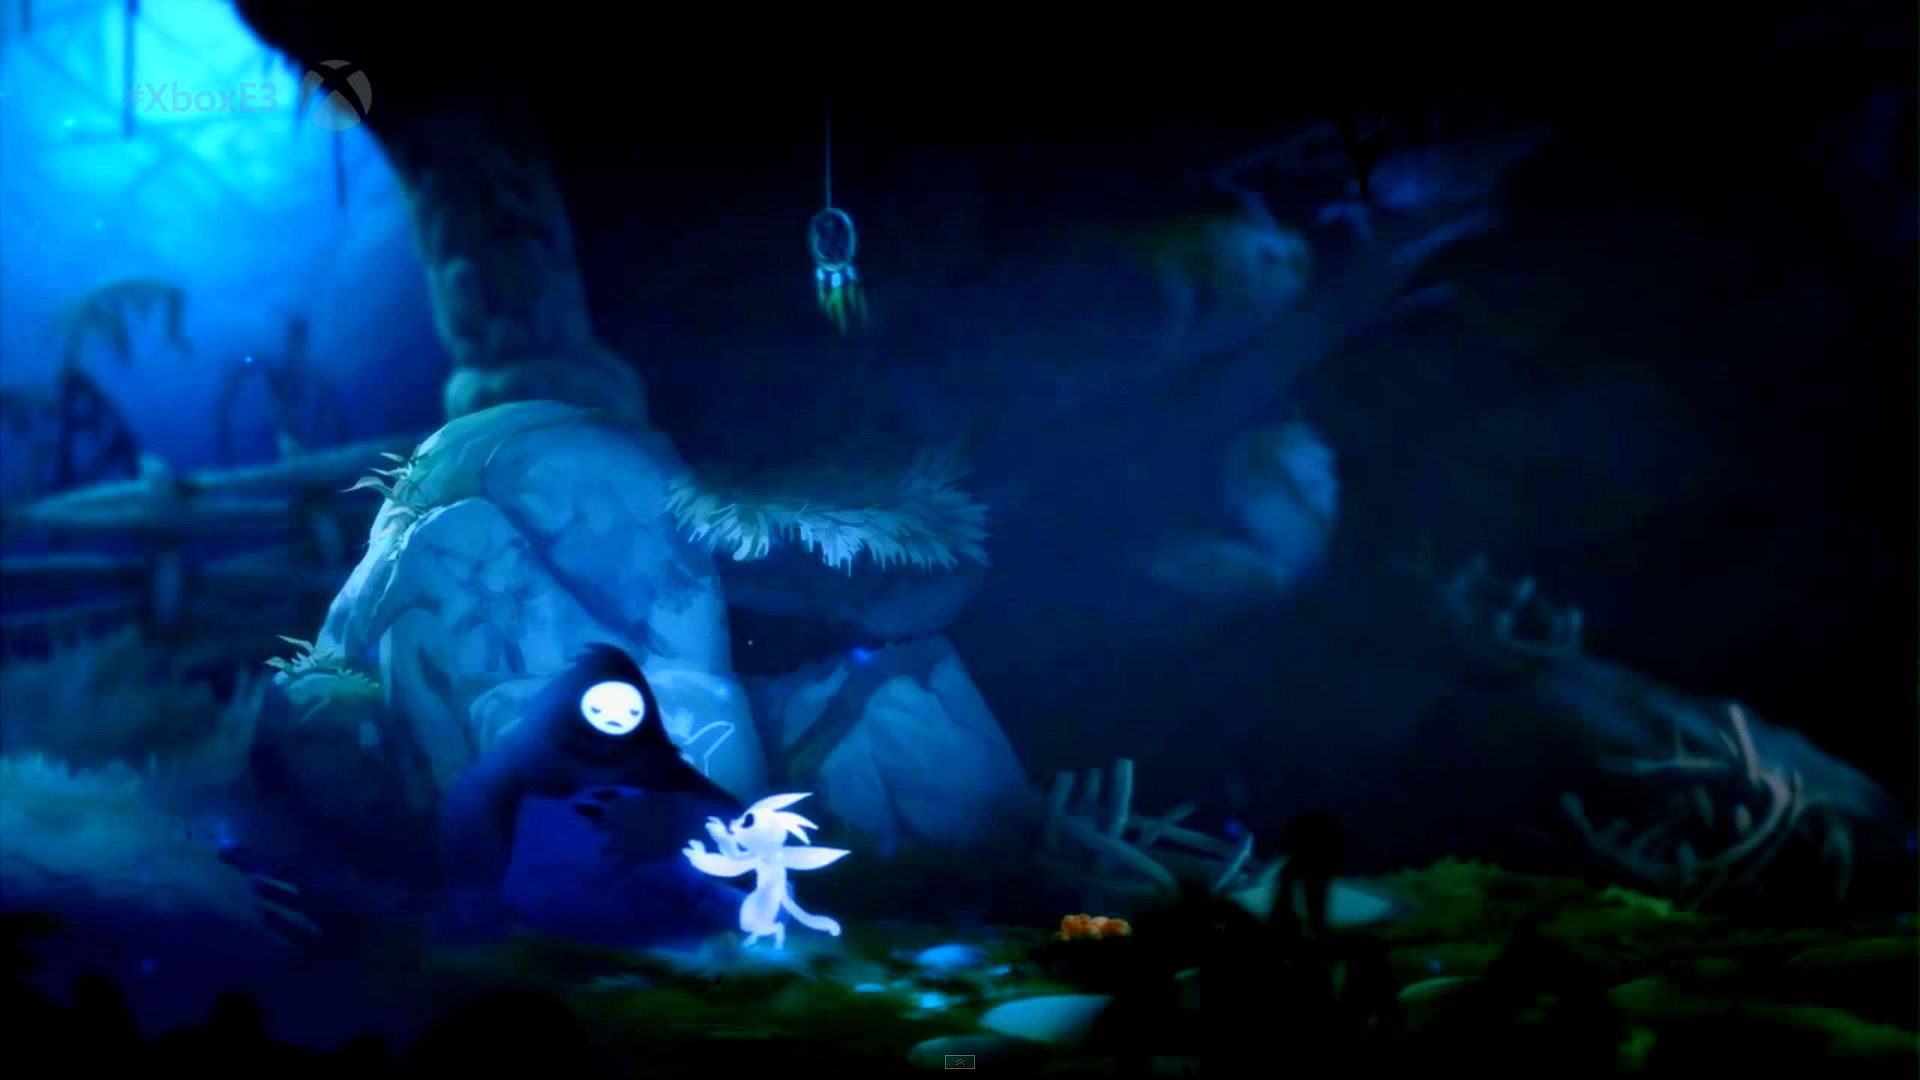 Ori And The Blind Forest Hd Wallpaper: ORI-BLIND-FOREST Action Adventure Rpg Fantasy Ori Blind